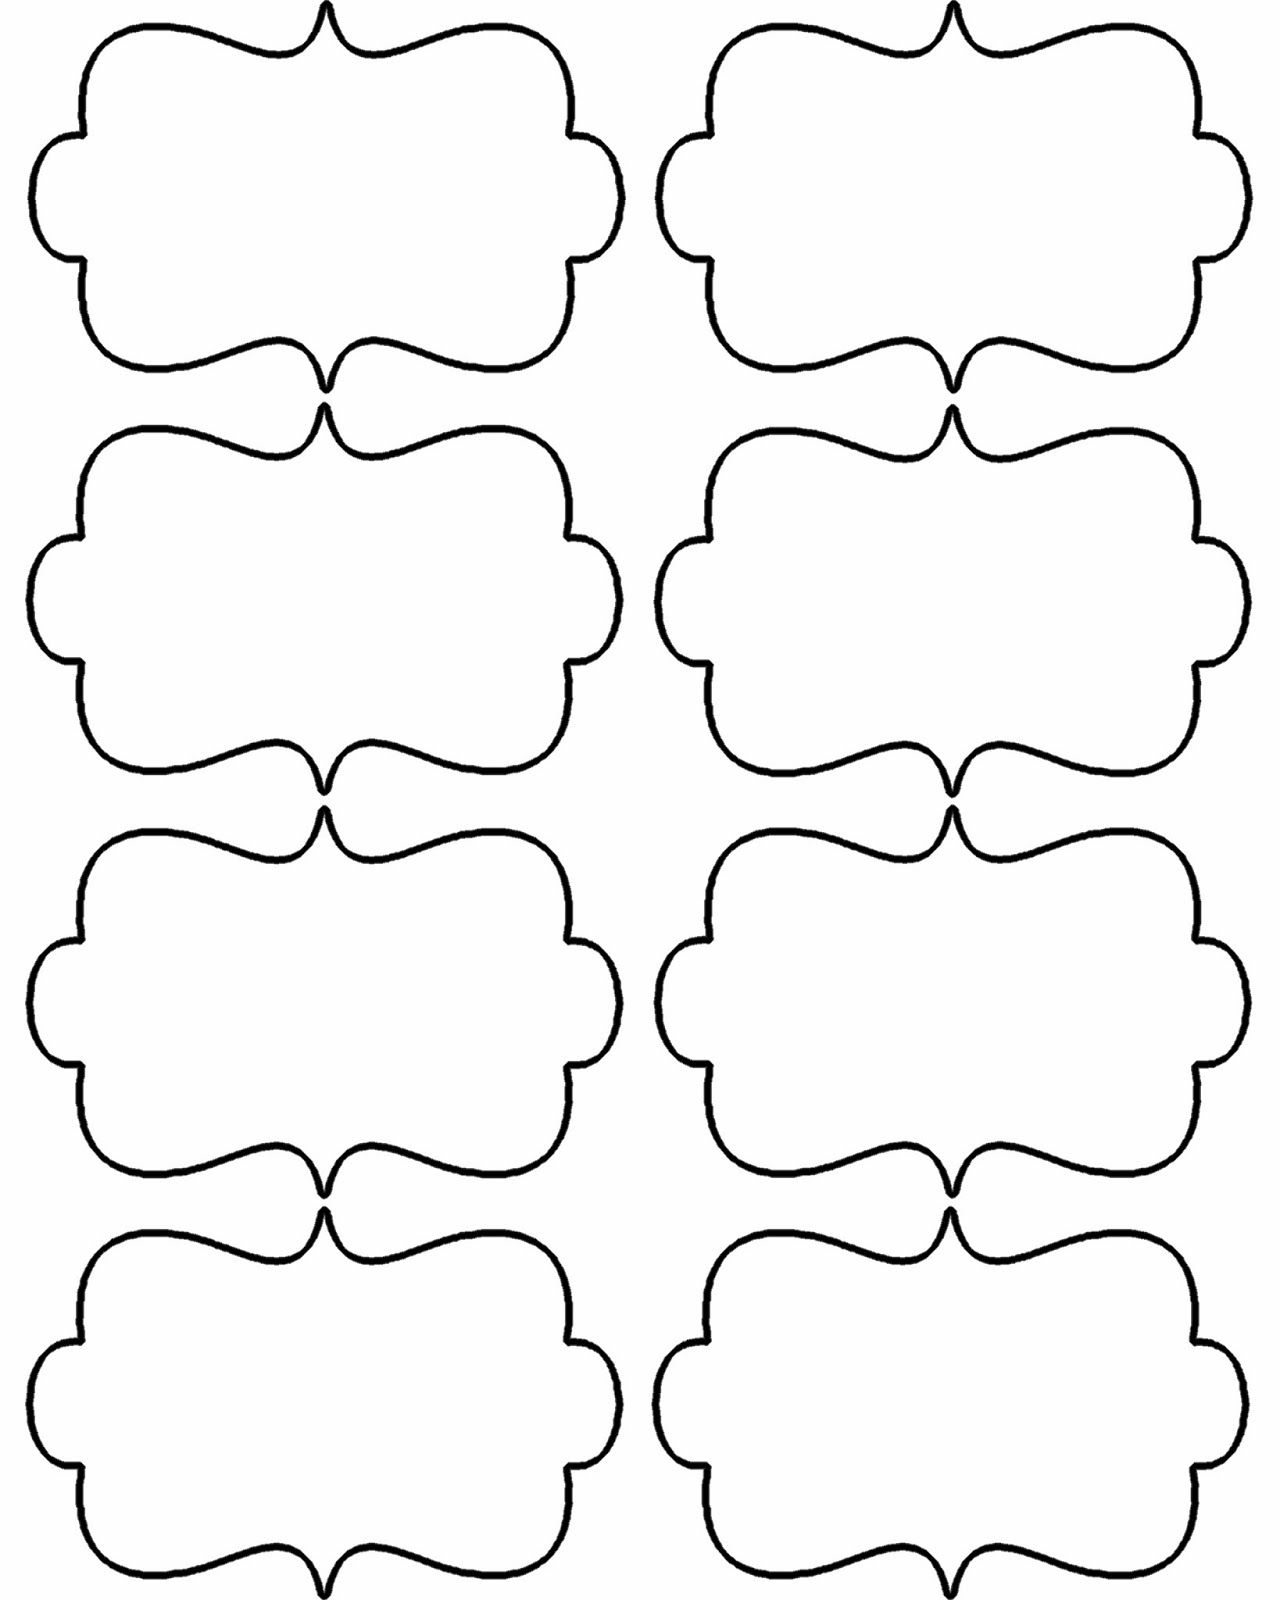 blank christmas shapes templates Bing Images patterns